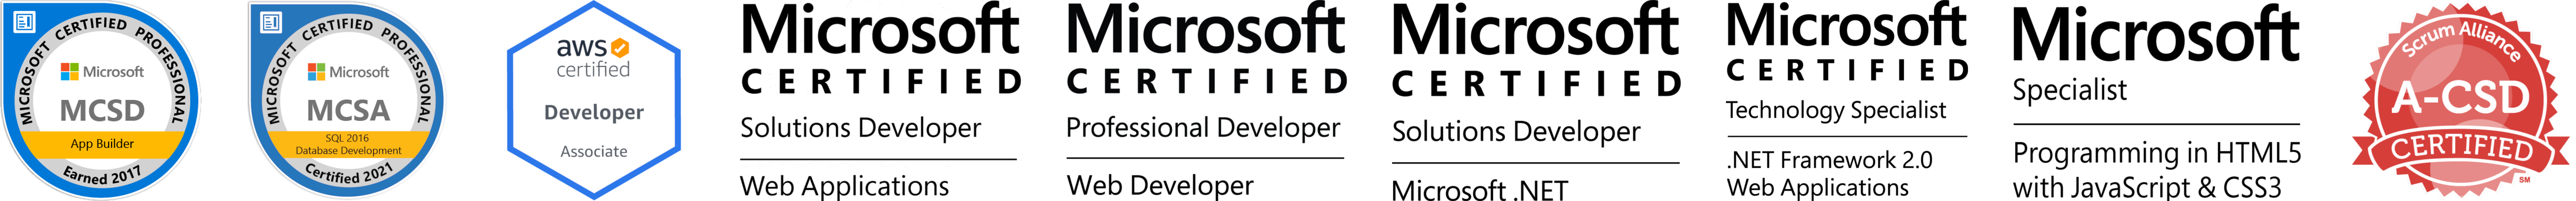 Pinchbeck resume microsoft certification stamps 1betcityfo Gallery